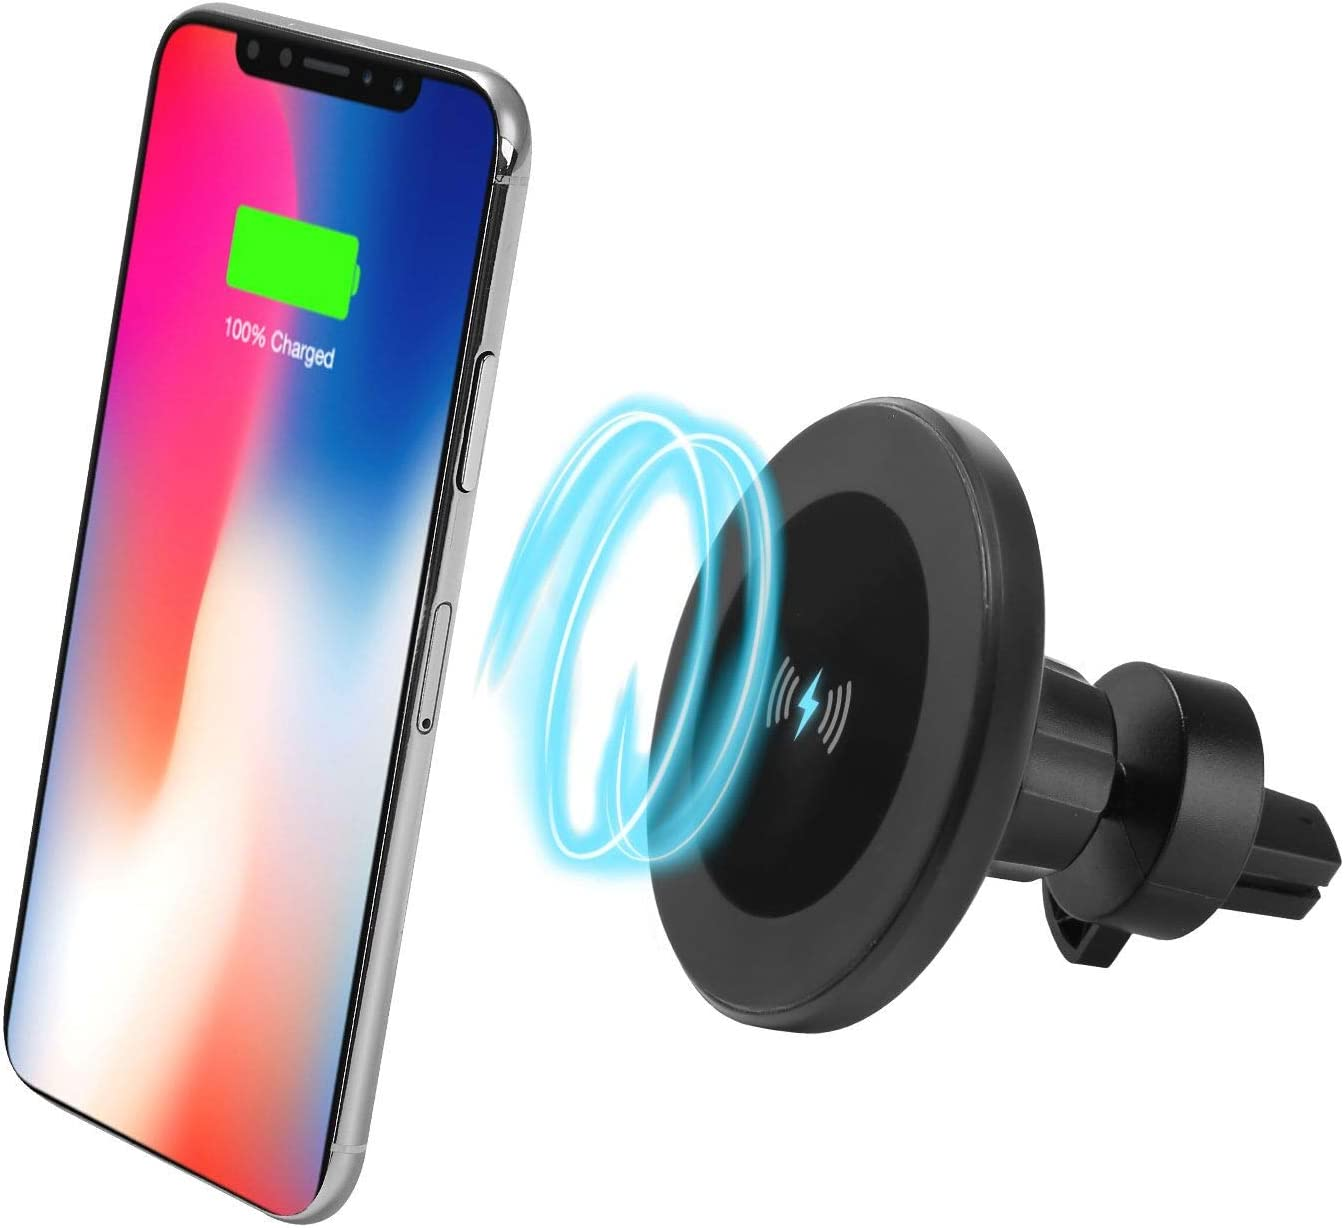 S8 Plus S7 S7 Edge S6 Edge Plus Note 8、Apple iPhone X//8//8 Plus and All QI-Enabled Devices S8 S8 No Car Charger XINLON Magnetic Fast Wireless Car Charger,Wireless Charging for Samsung S9 S9